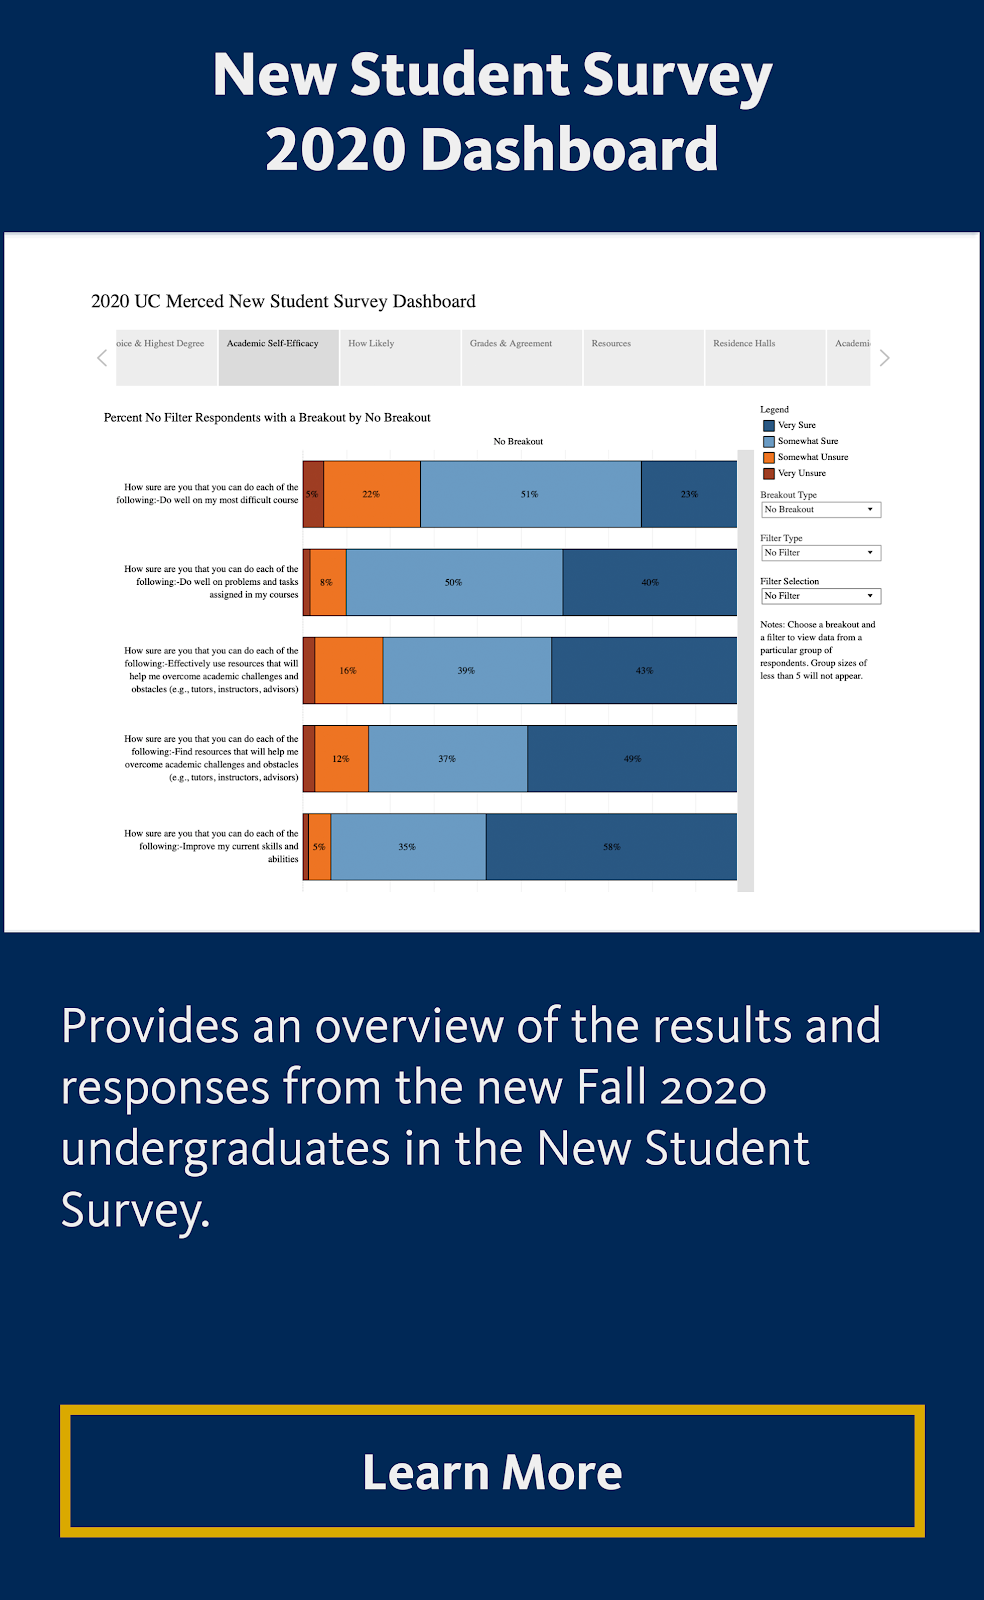 New Student Survey 2020 Dashboard